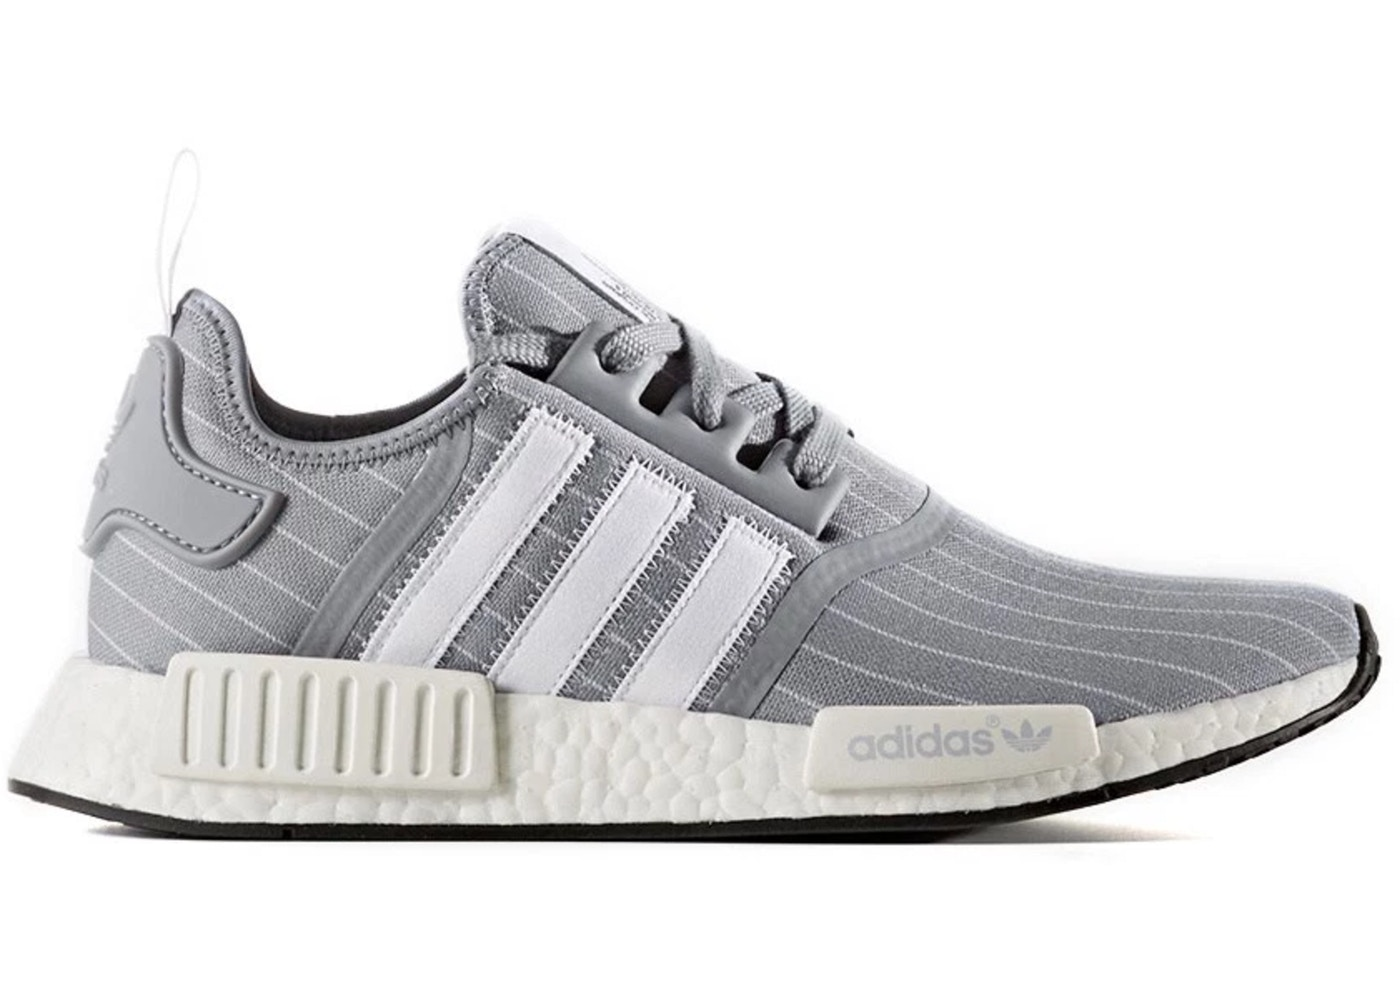 reputable site ff1e1 dc43e adidas NMD Shoes - New Lowest Asks